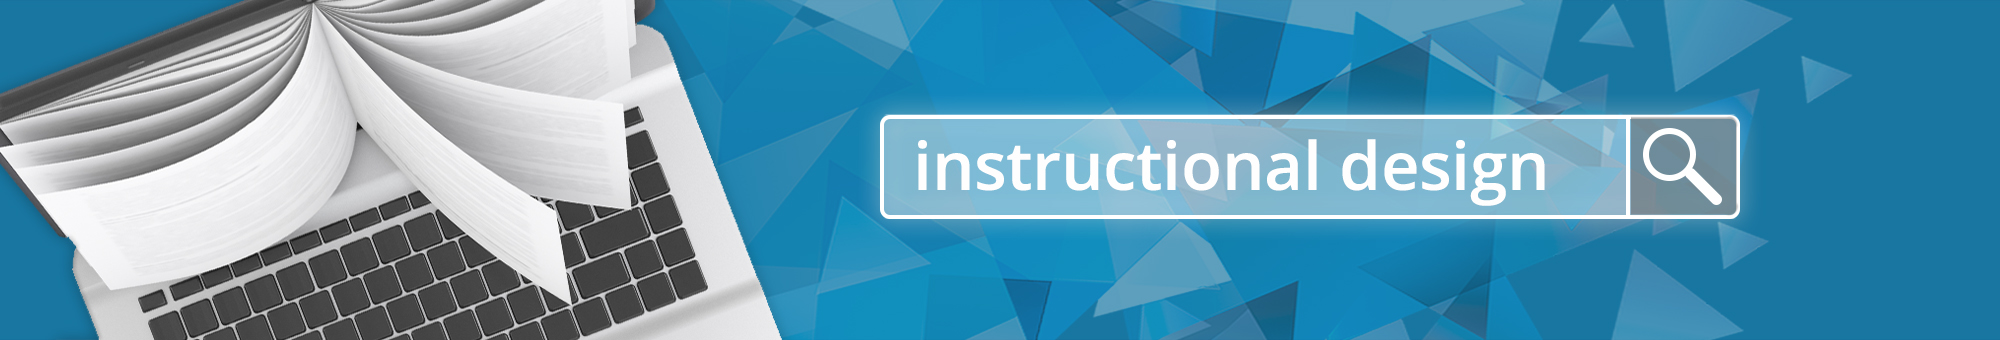 instructional-design-banner